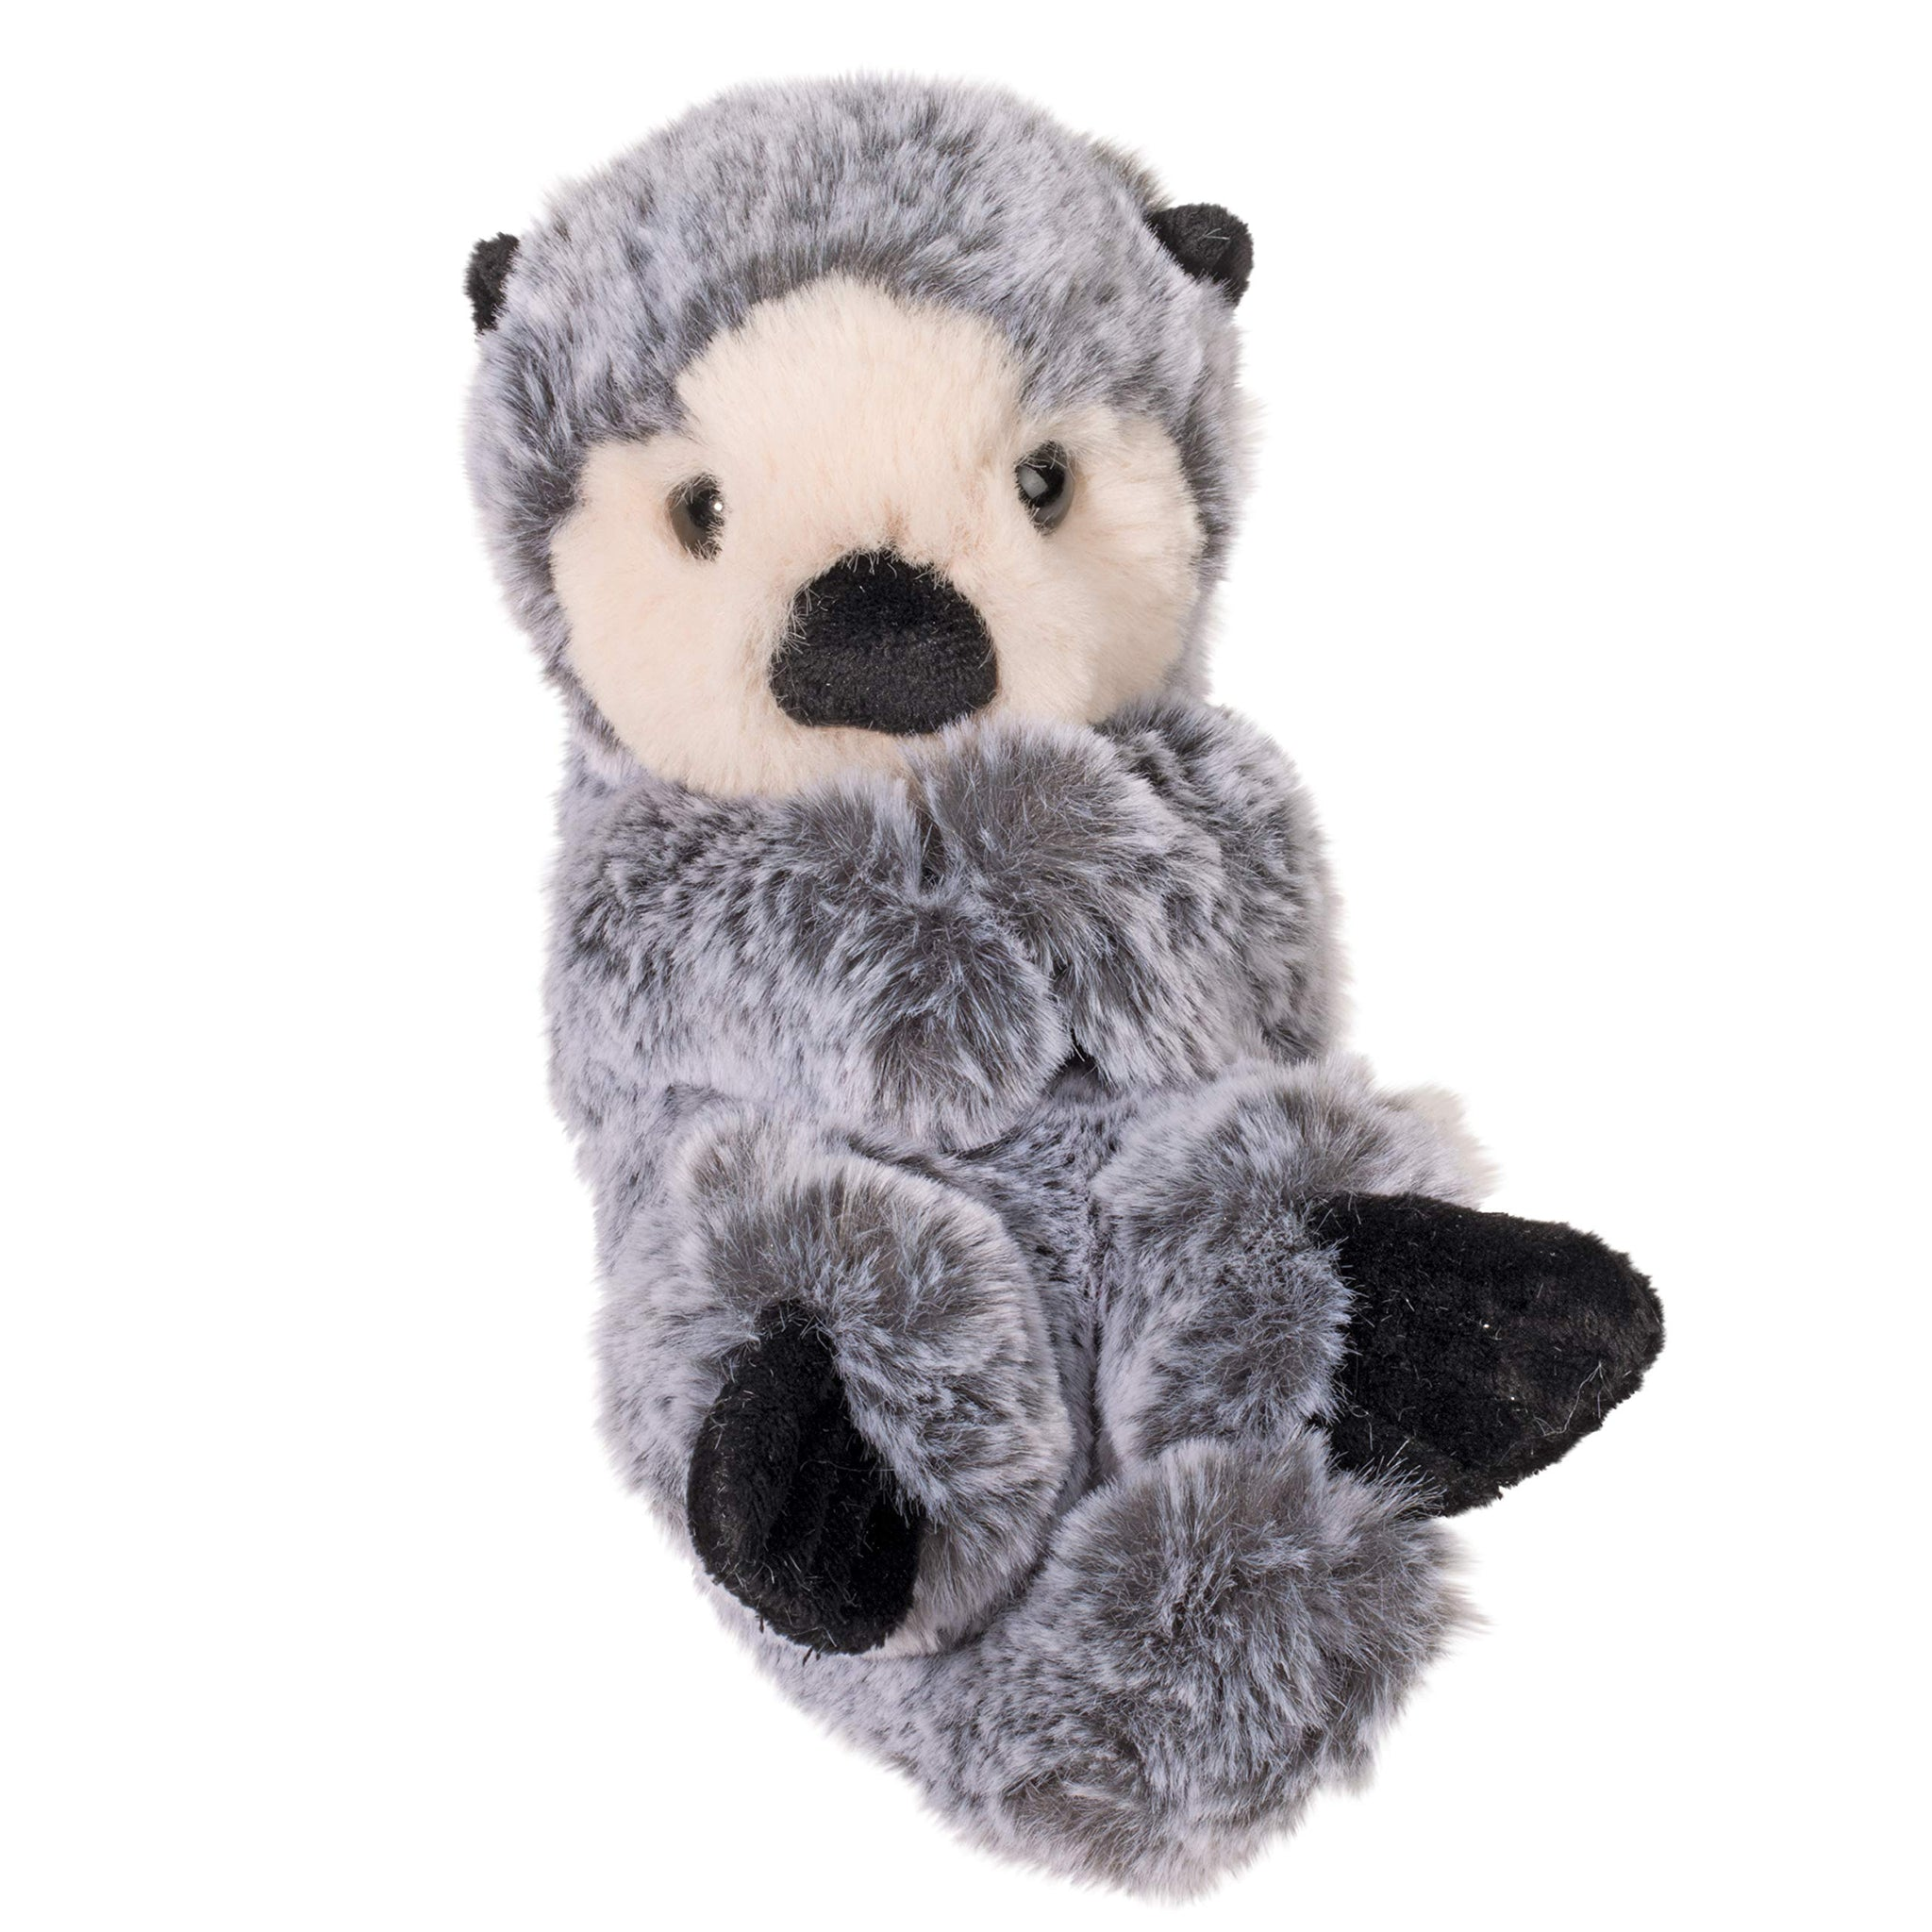 Douglas Plush Baby Sea Otter Lil' Handful Stuffed Animal